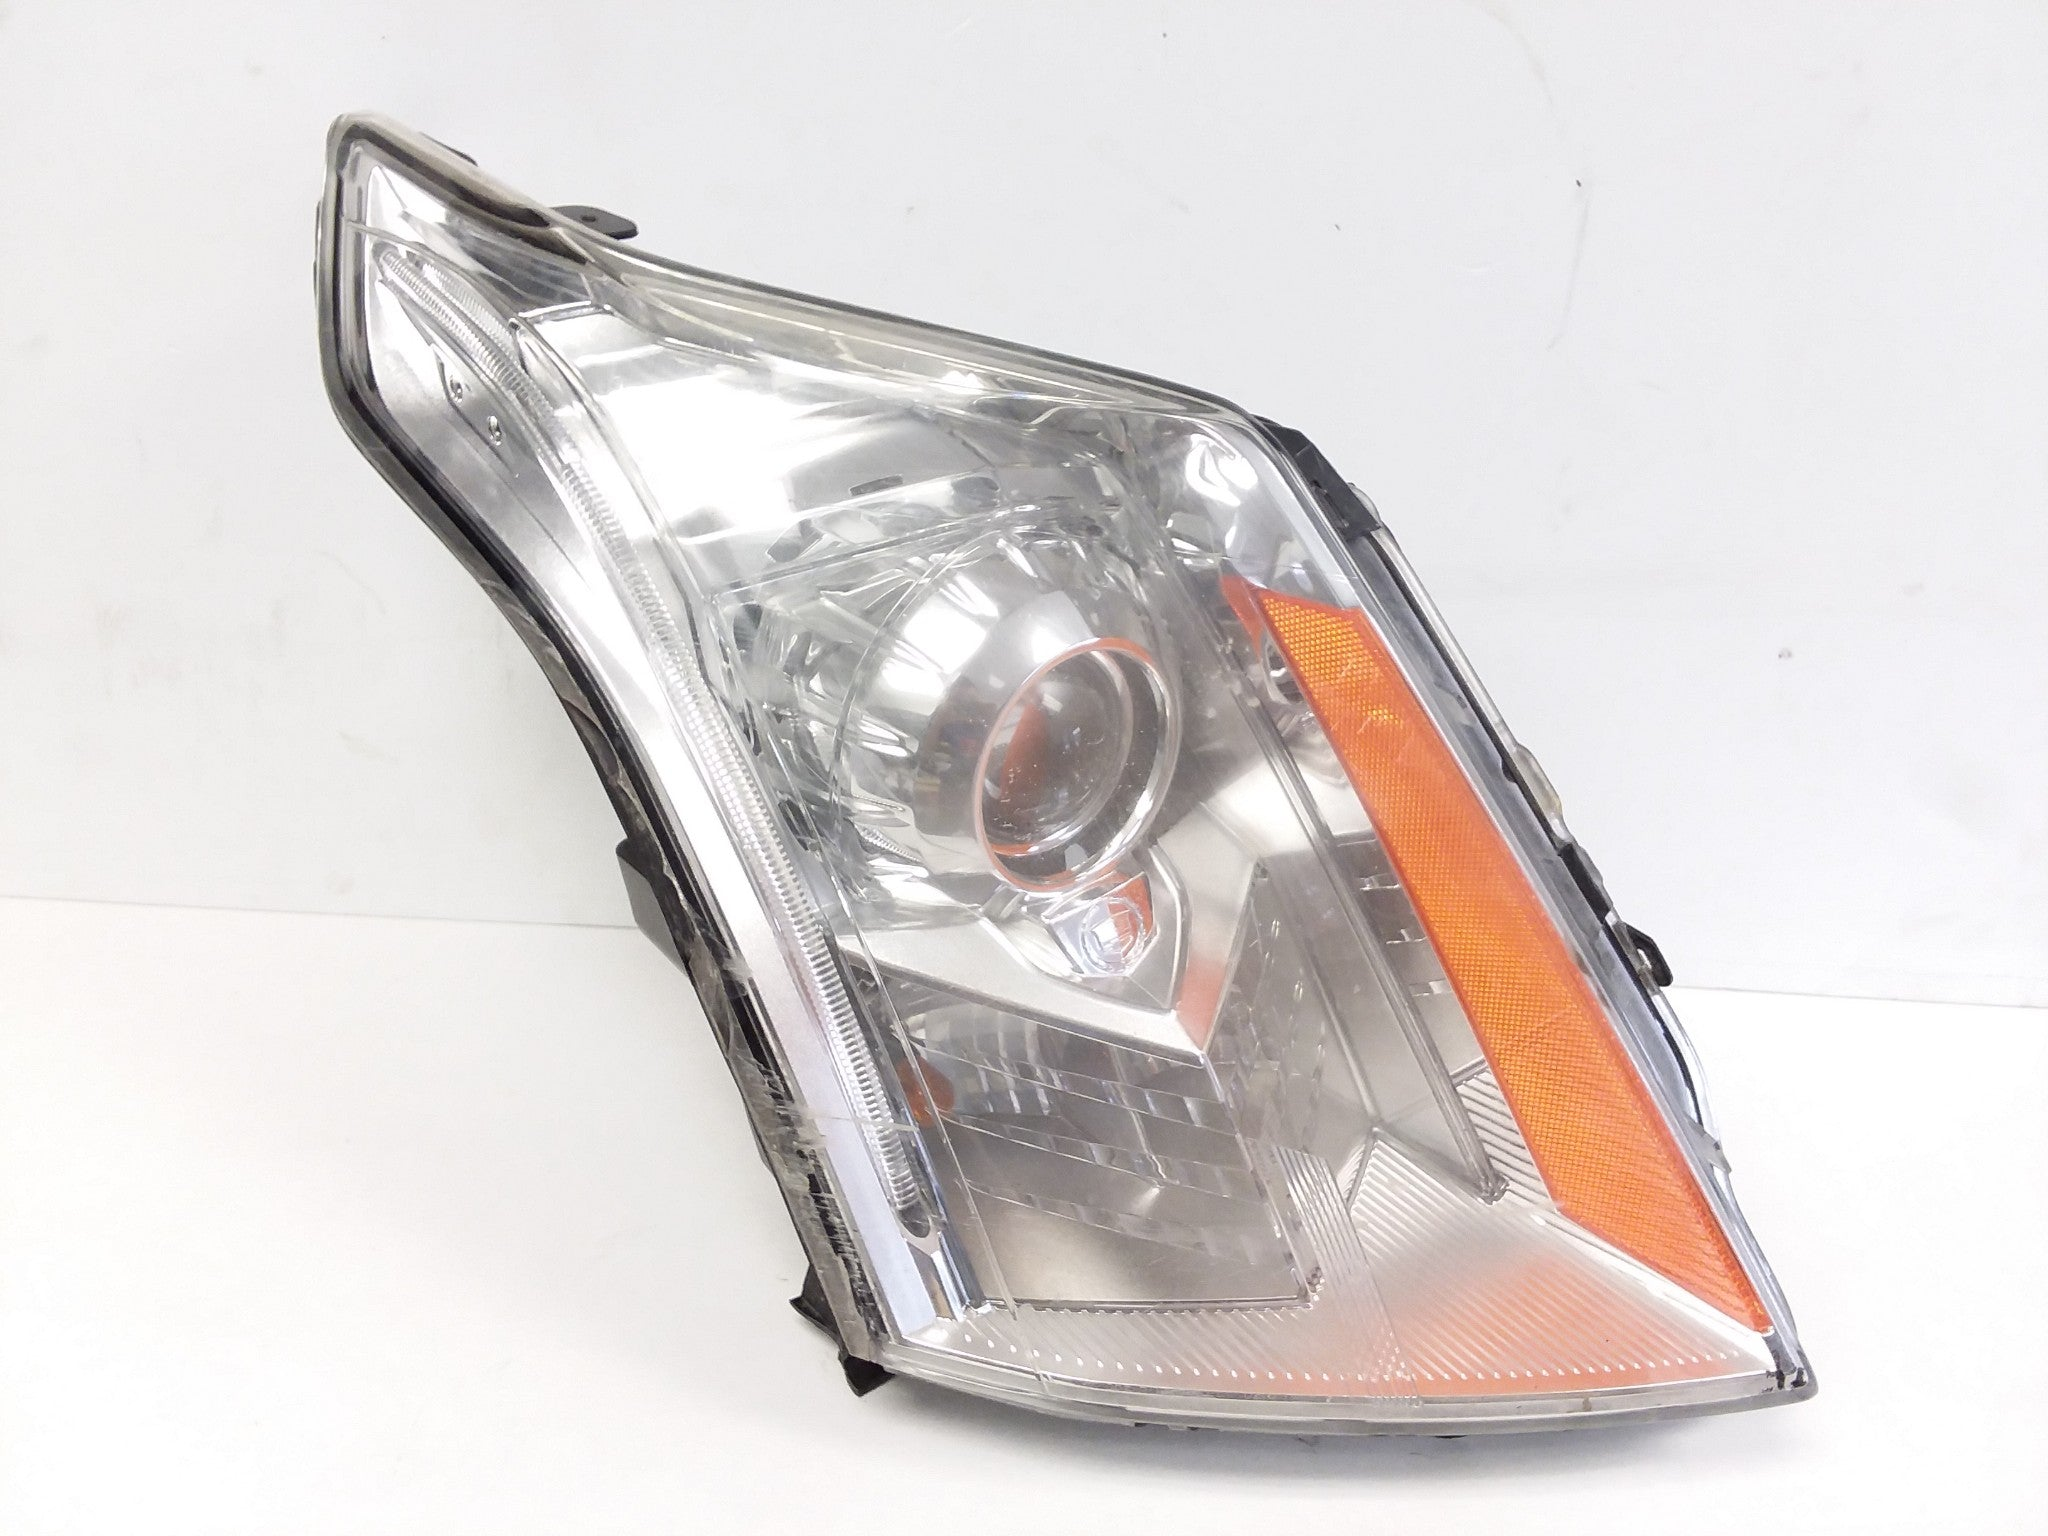 2010 2011 2012 2013 2014 2015 2016 CADILLAC SRX HEADLIGHT HID XENON RIGHT OEM